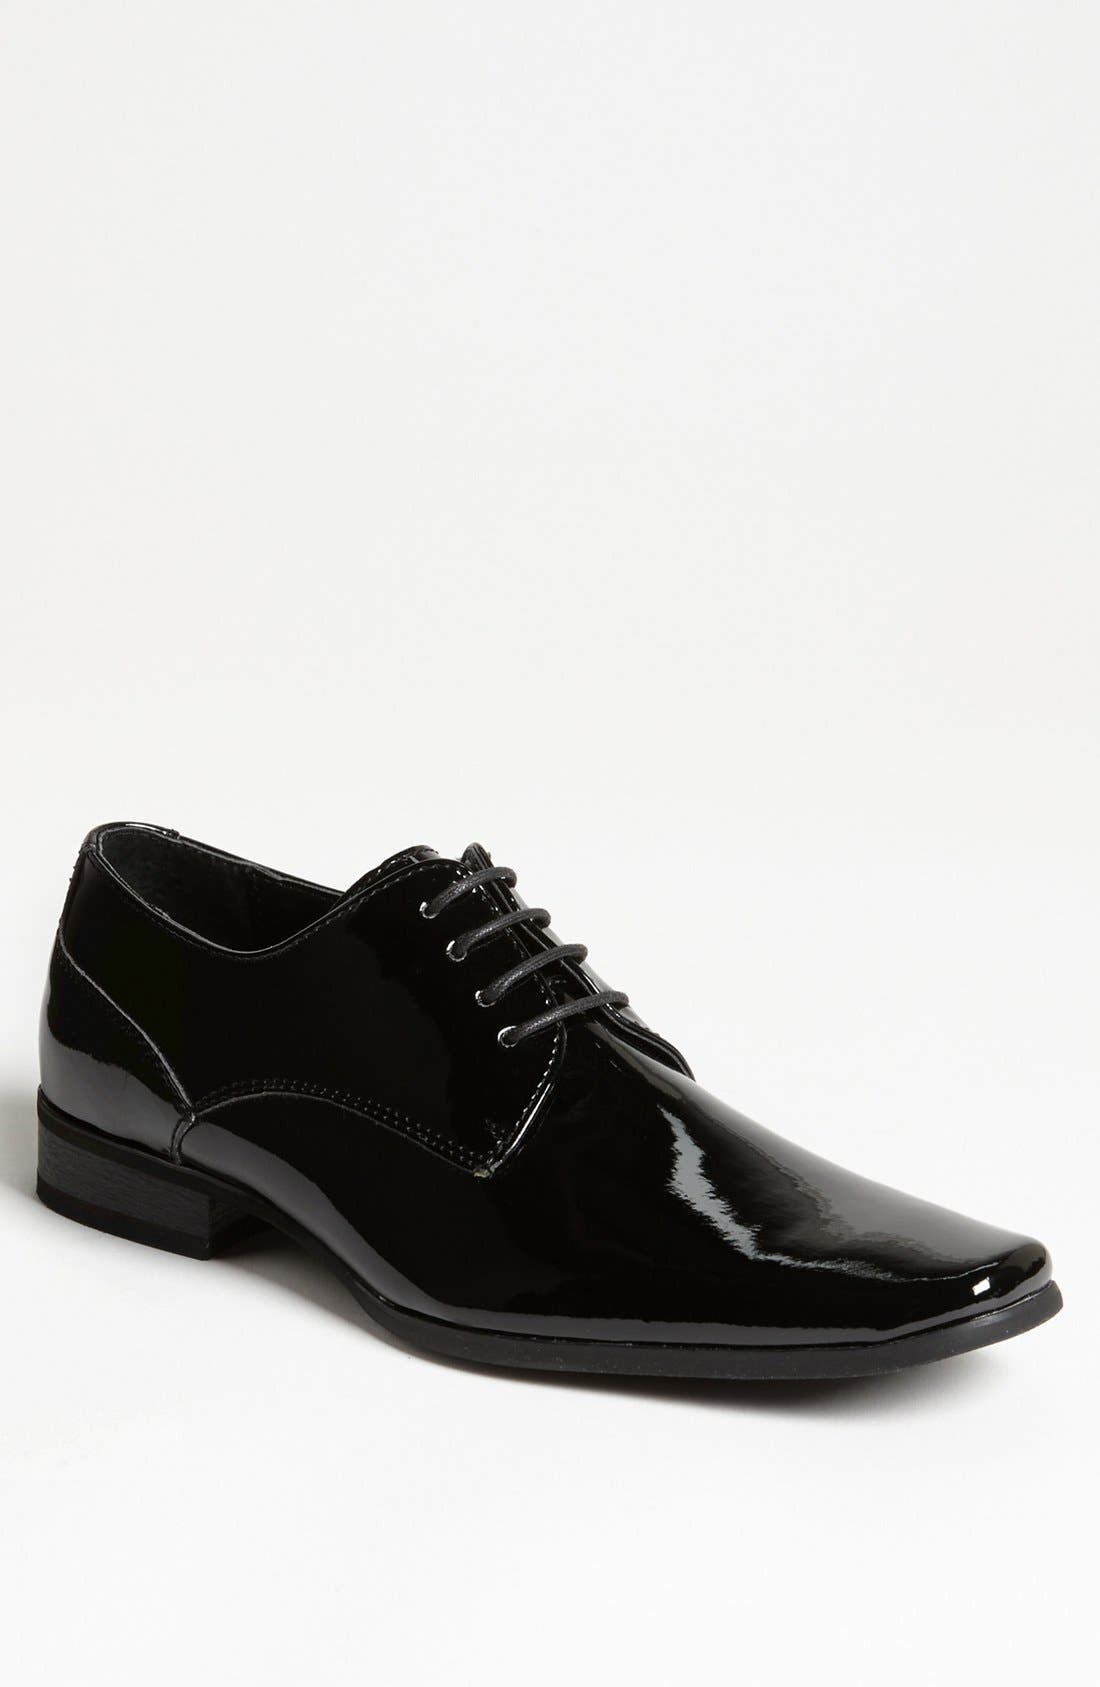 Alternate Image 1 Selected - Calvin Klein 'Brodie' Plain Toe Derby